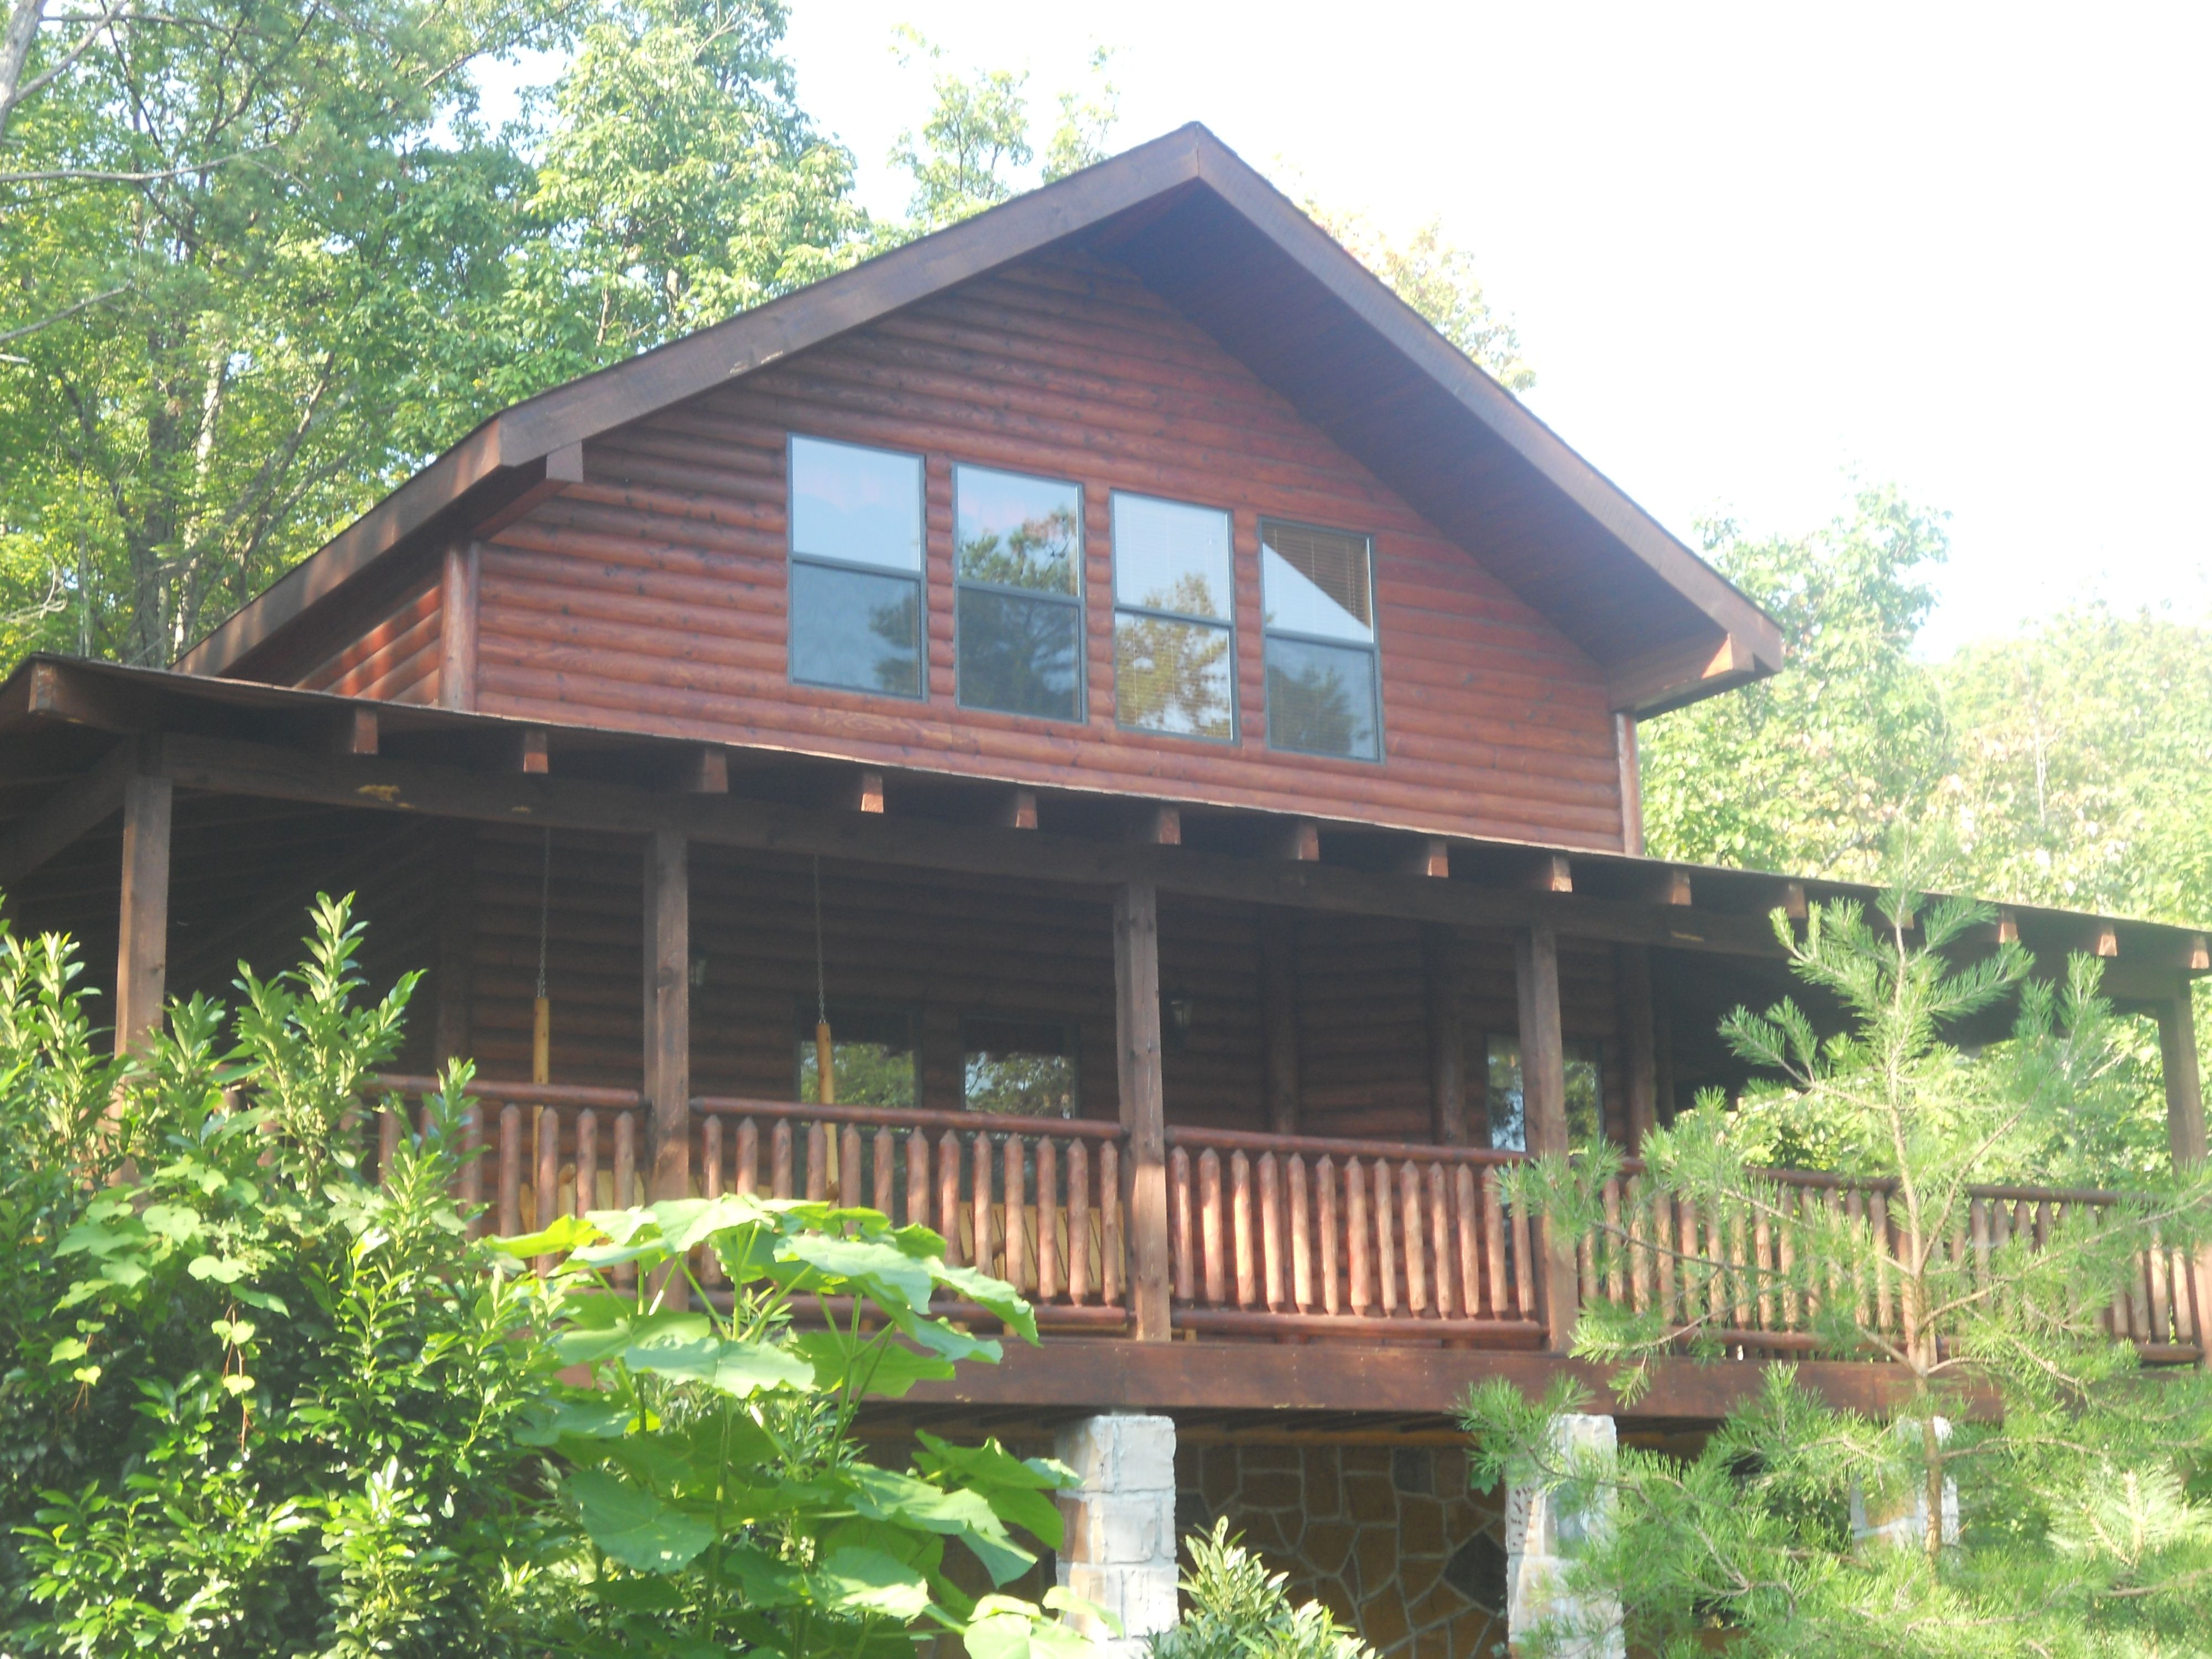 tennessee pigeon rent in rentals cabinsforyou gatlinburg tn cabin forge pin for com near cabins